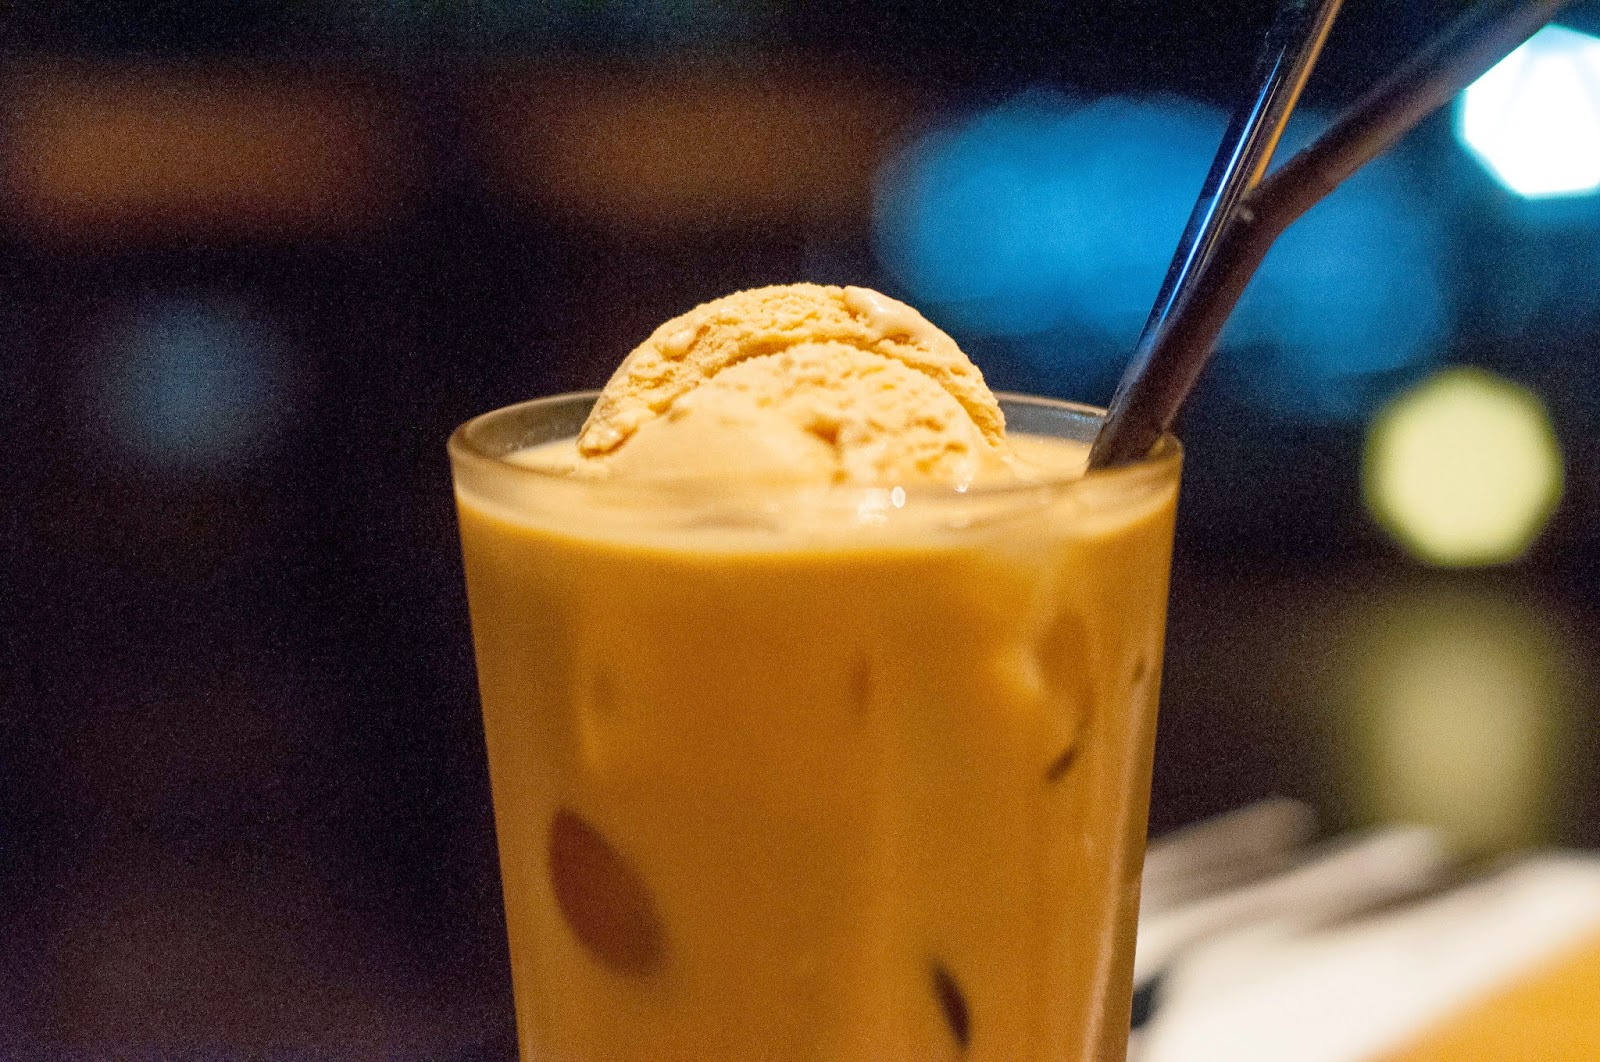 providore iced latte salted caramel